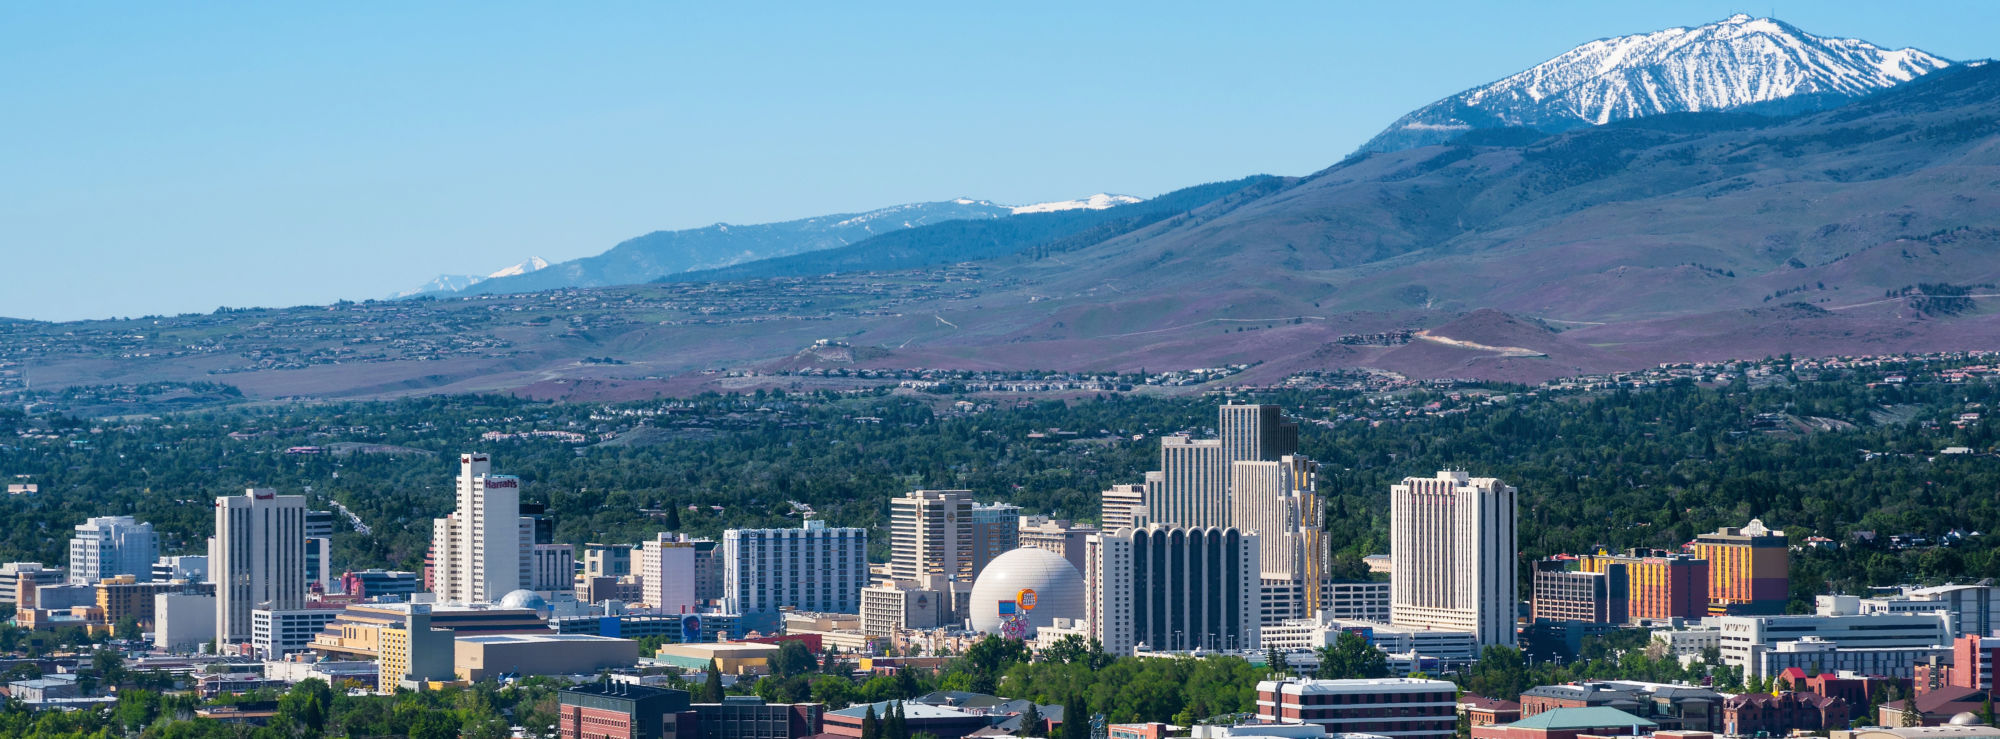 Home Security in Reno, Nevada